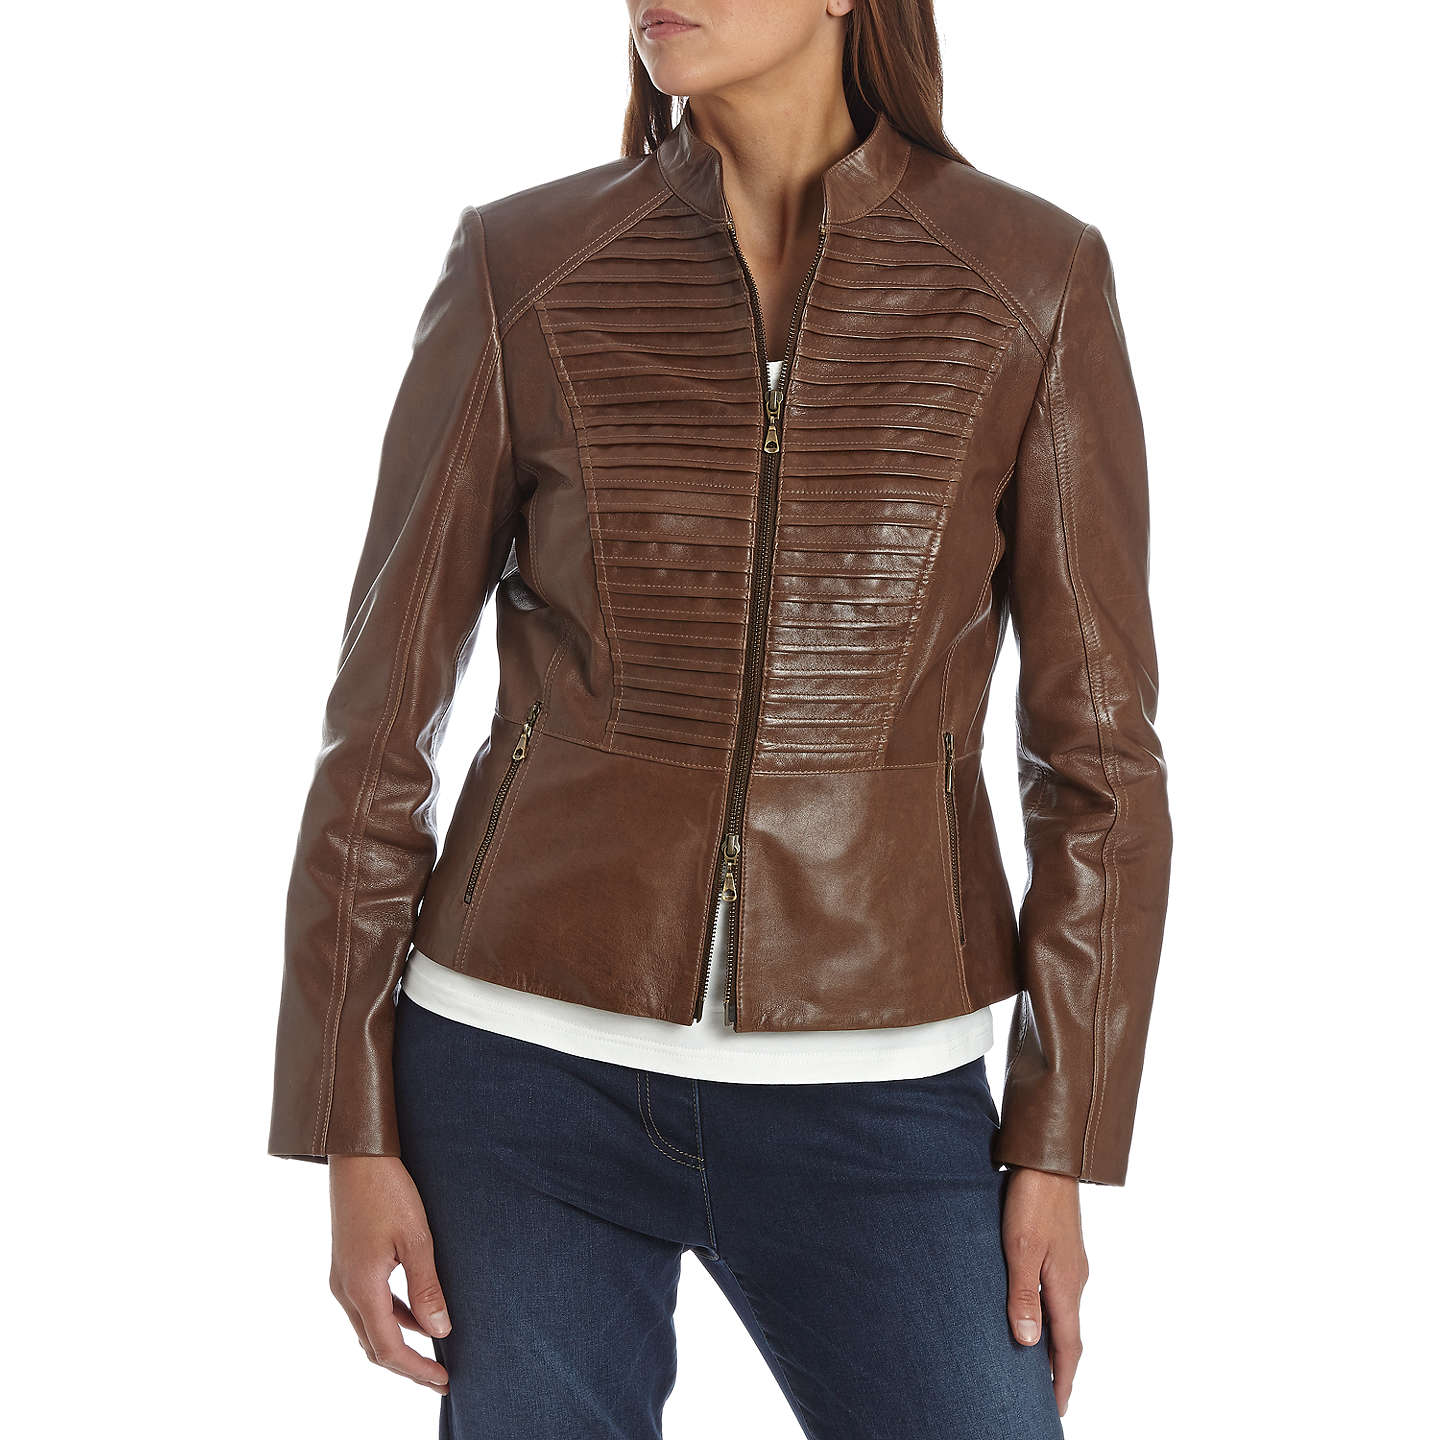 BuyBetty Barclay Leather Jacket, Tobacco Brown, 10 Online at johnlewis.com